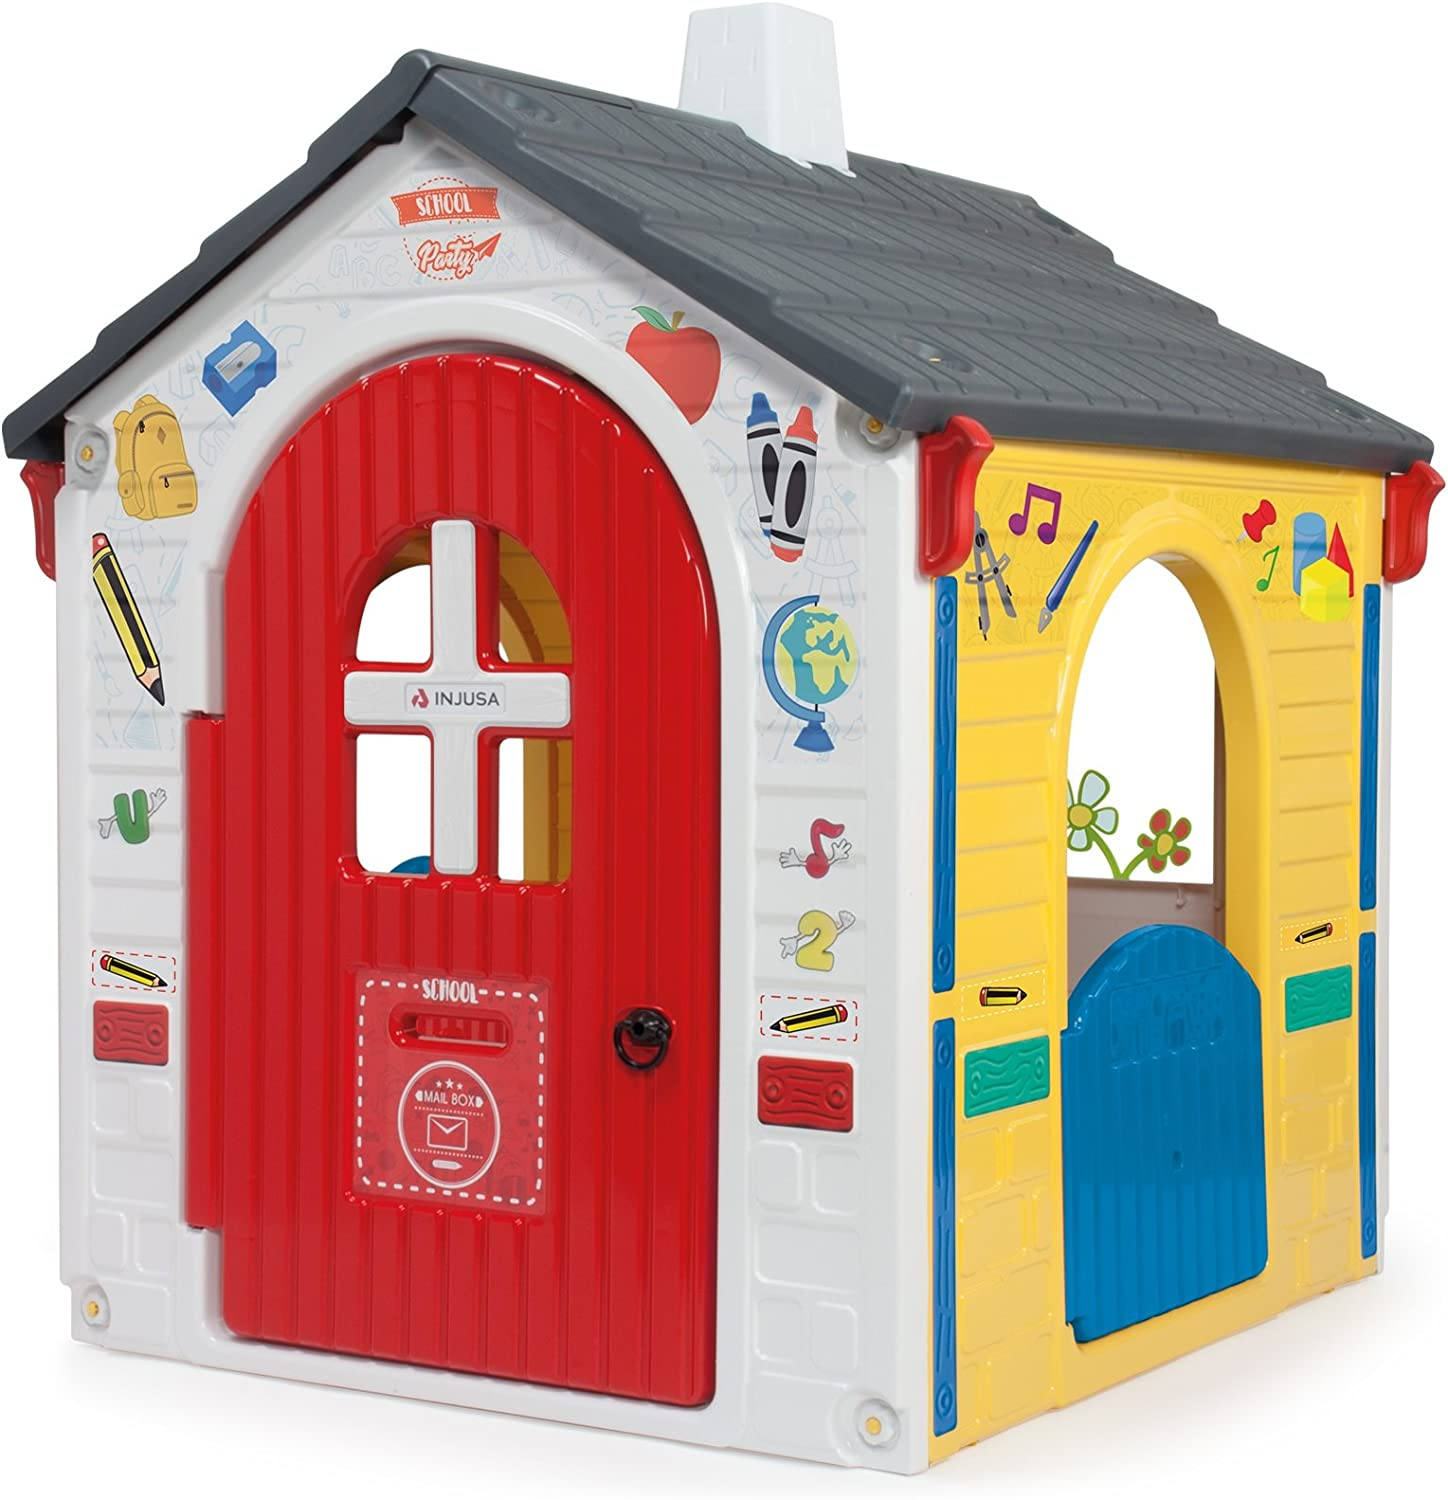 INJUSA-20334 Casa Country E-Learning, multicolor, 21 x 10 x 5 cm (20334) , color/modelo surtido